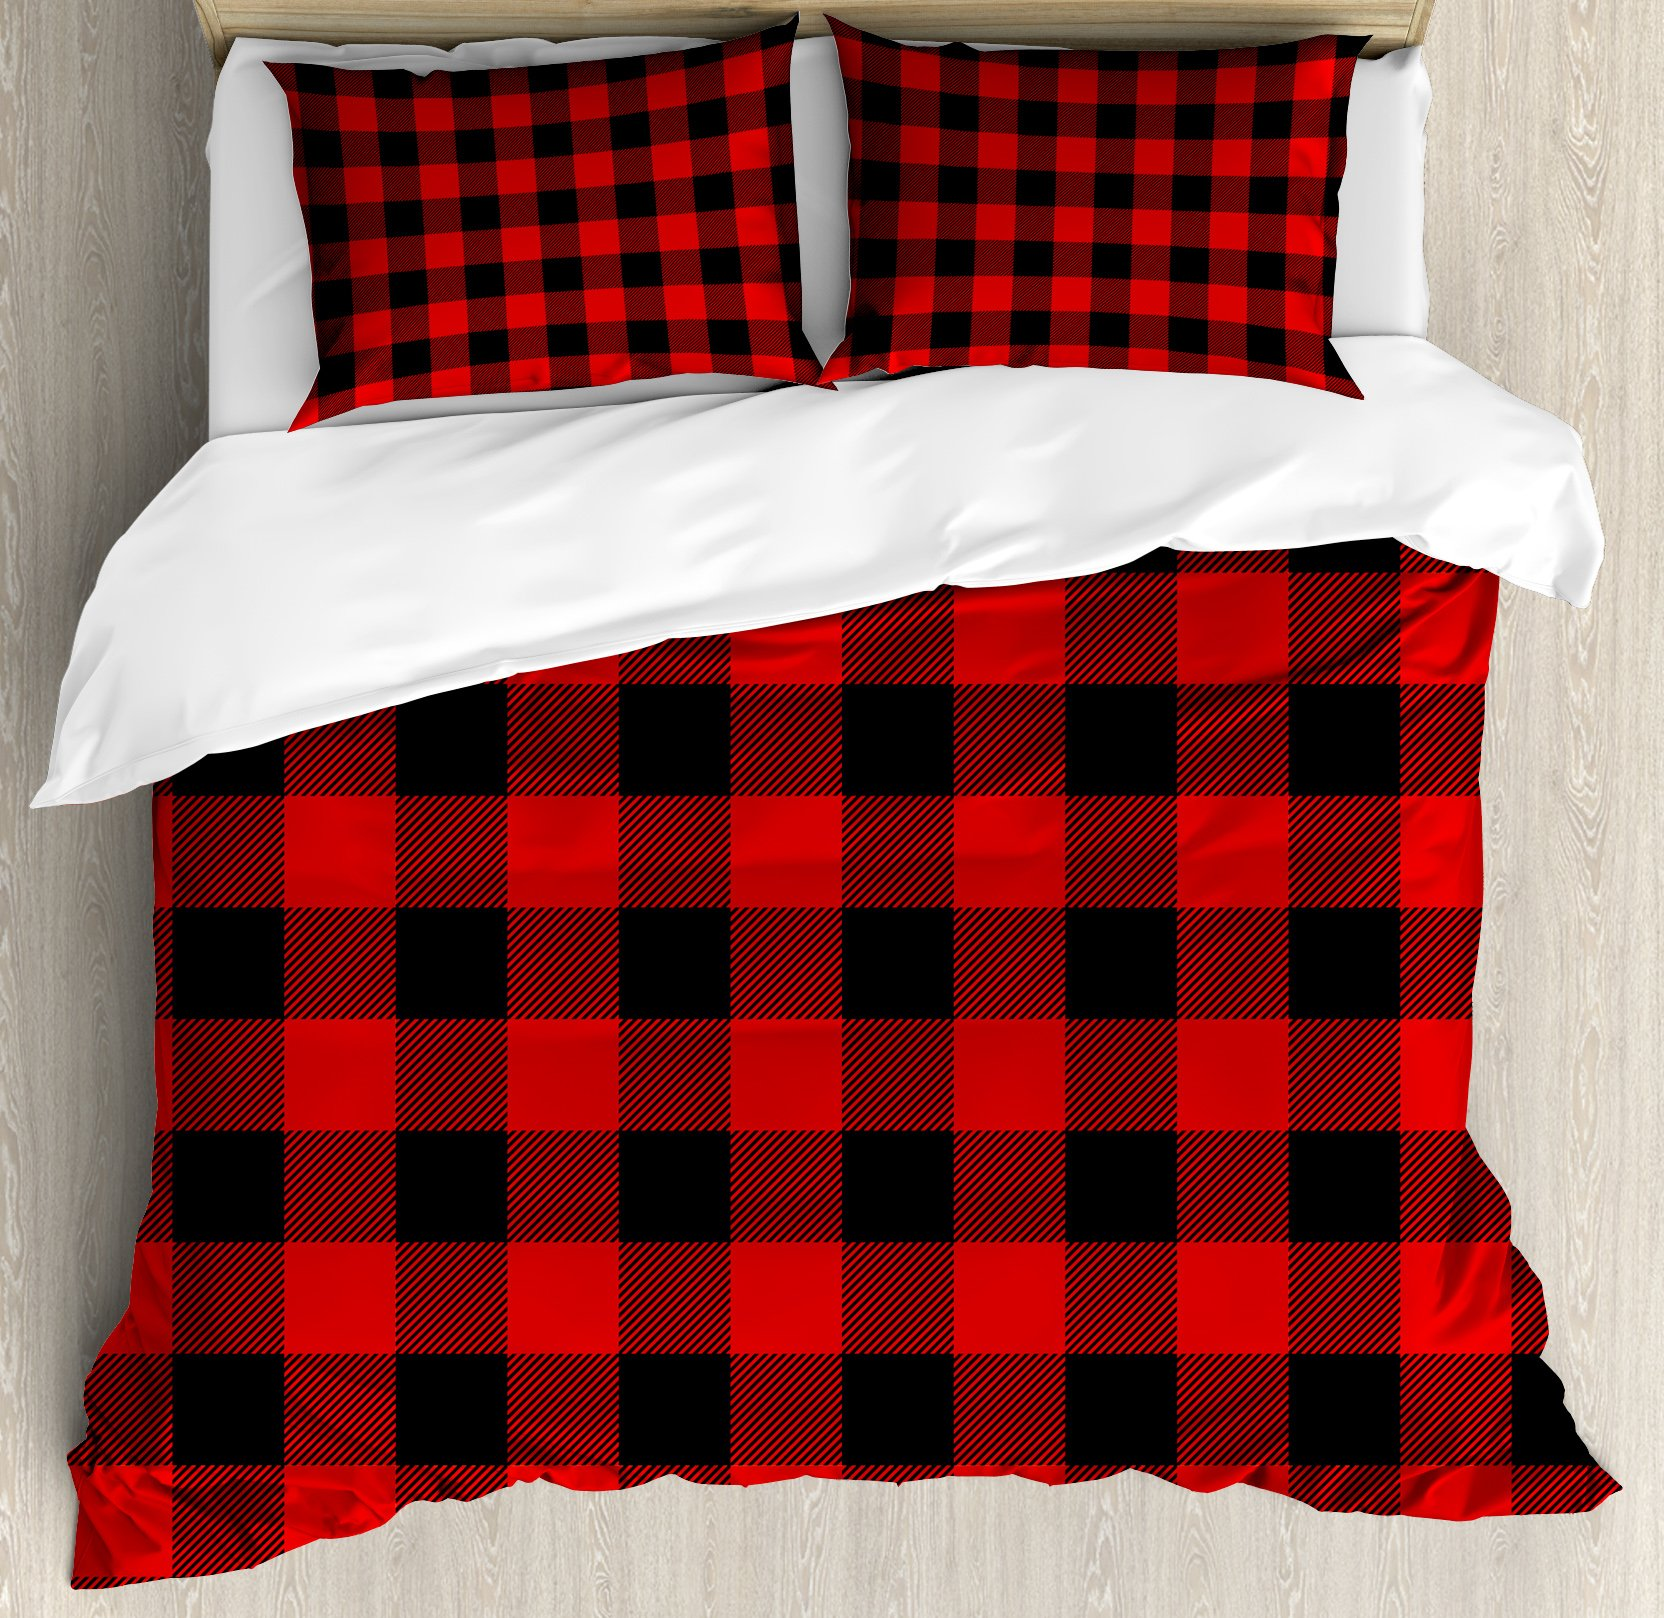 Red Plaid King Size Duvet Cover Set by Ambesonne, Lumberjack Clothing Inspired Square Pattern Checkered Grid Style Quilt Design, Decorative 3 Piece Bedding Set with 2 Pillow Shams, Scarlet Black